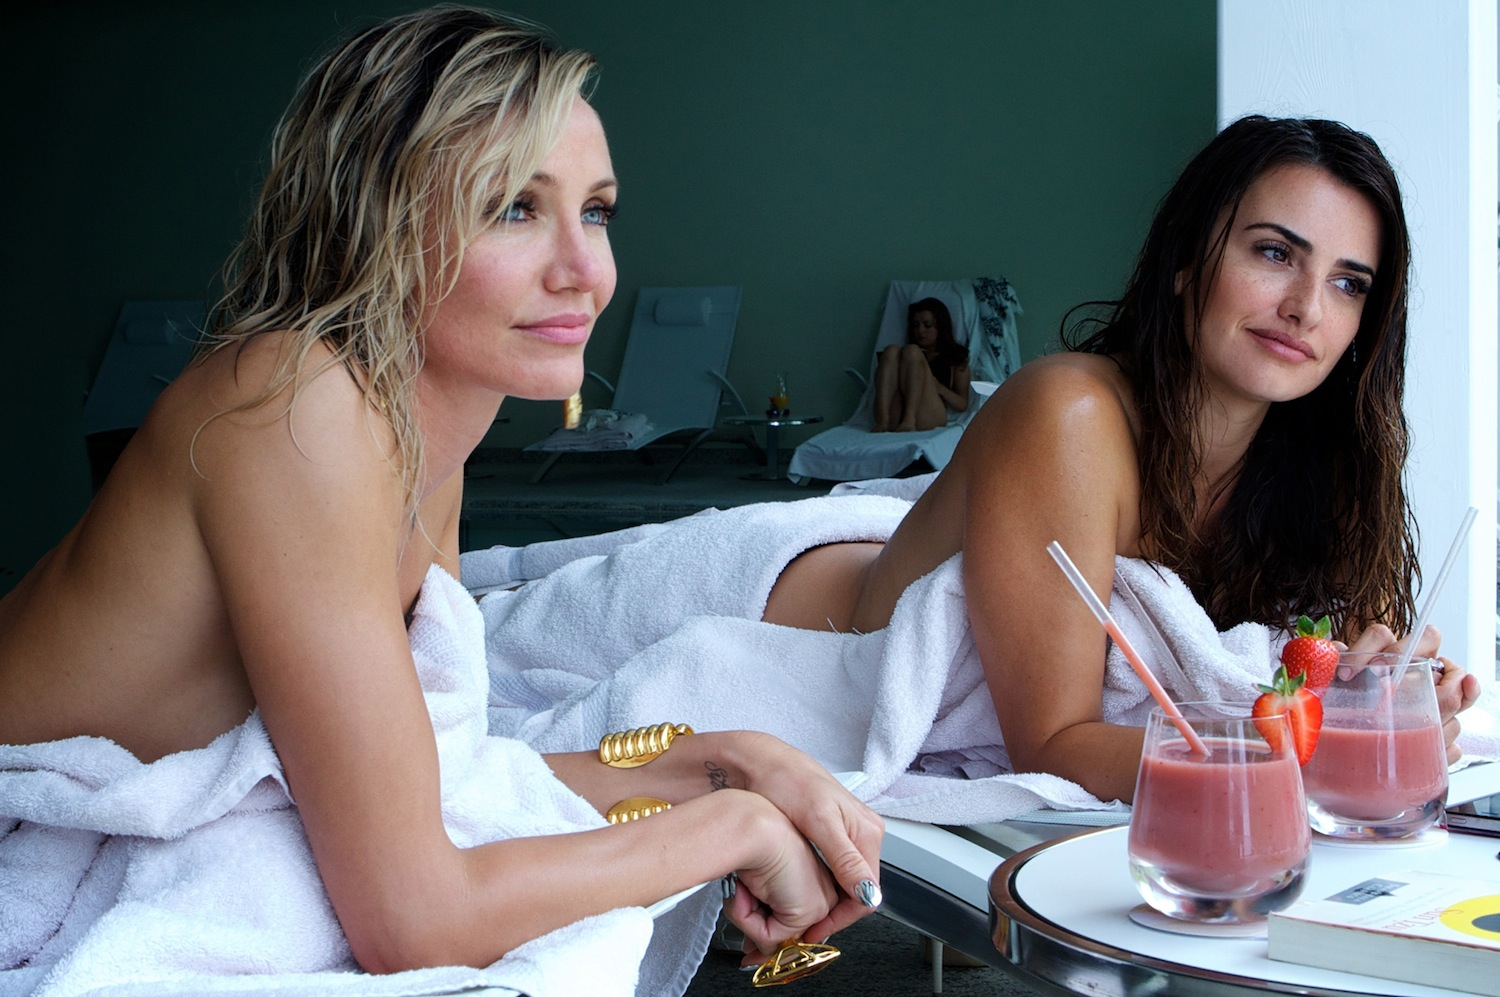 'The Counselor': New Pics Of Cameron Diaz, Penélope Cruz